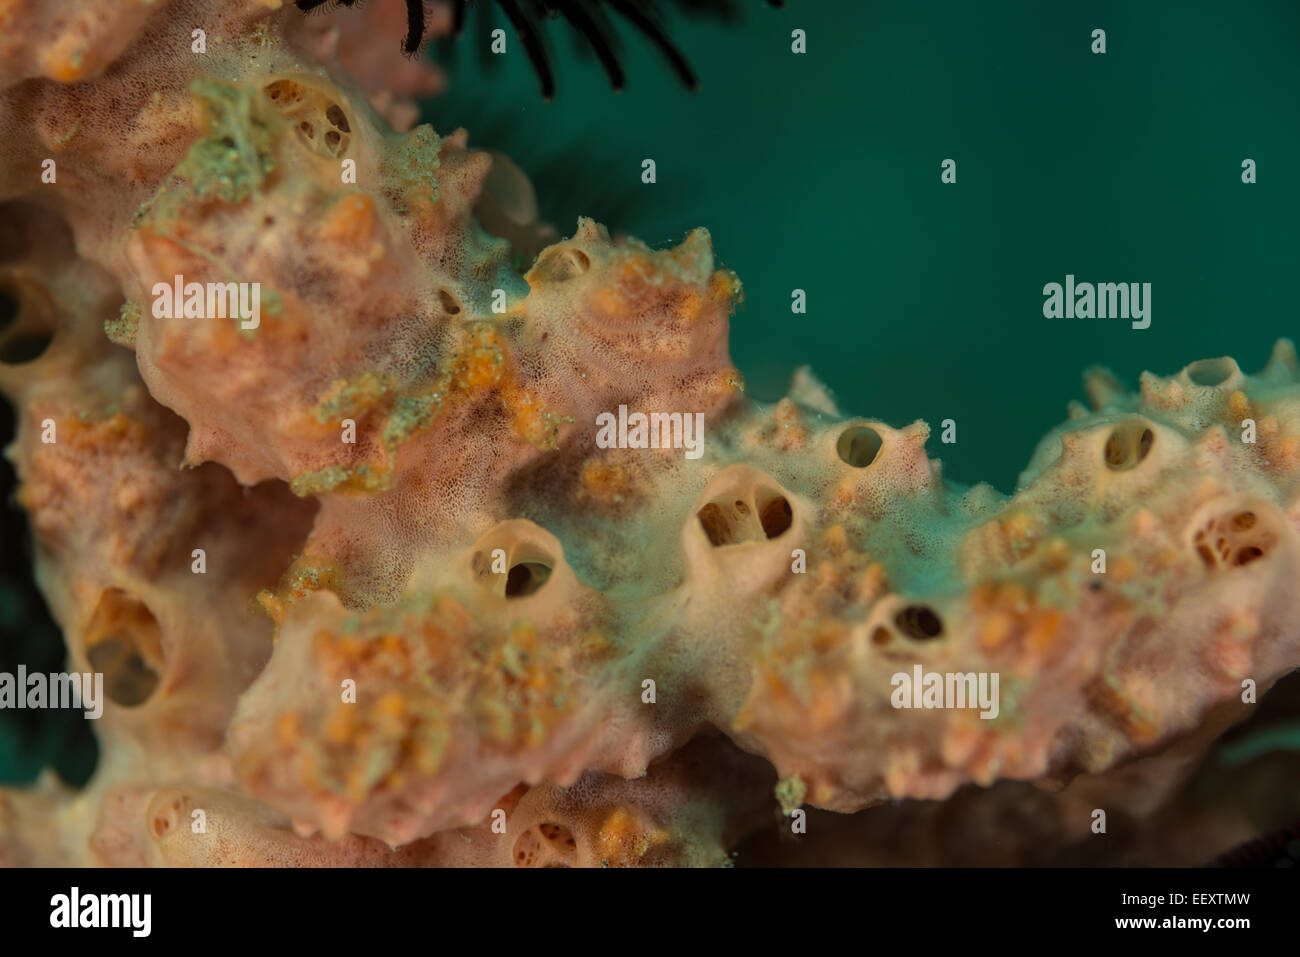 Spongy soft coral - Stock Image